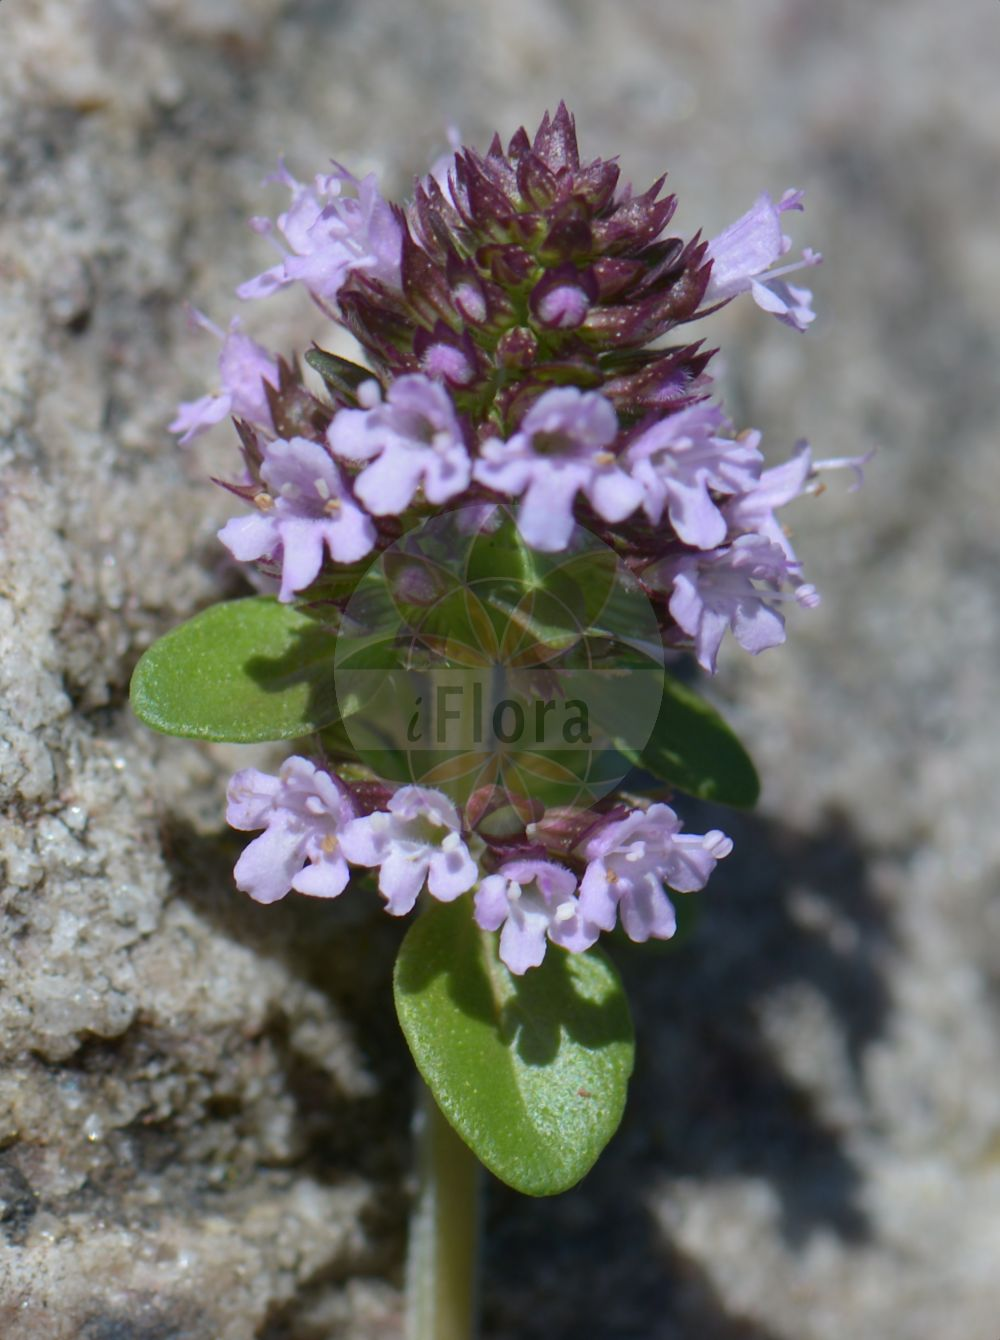 Foto von Thymus pulegioides (Arznei-Thymian - Large Thyme). Das Bild zeigt Blatt und Bluete. Das Foto wurde in Kopenhagen, Daenemark aufgenommen. ---- Photo of Thymus pulegioides (Arznei-Thymian - Large Thyme).The image is showing leaf and flower.The picture was taken in Copenhagen, Denmark.(Thymus pulegioides,Arznei-Thymian,Large Thyme,Feld-Thymian,Krainer Quendel,Large Garden,Eurasian Thyme,Garden Thyme,Hungarian Thyme,Thymus,Thymian,Thyme,Lamiaceae,Lippenbluetengewaechse;Lippenbluetler,Nettle family,Blatt,Bluete,leaf,flower)